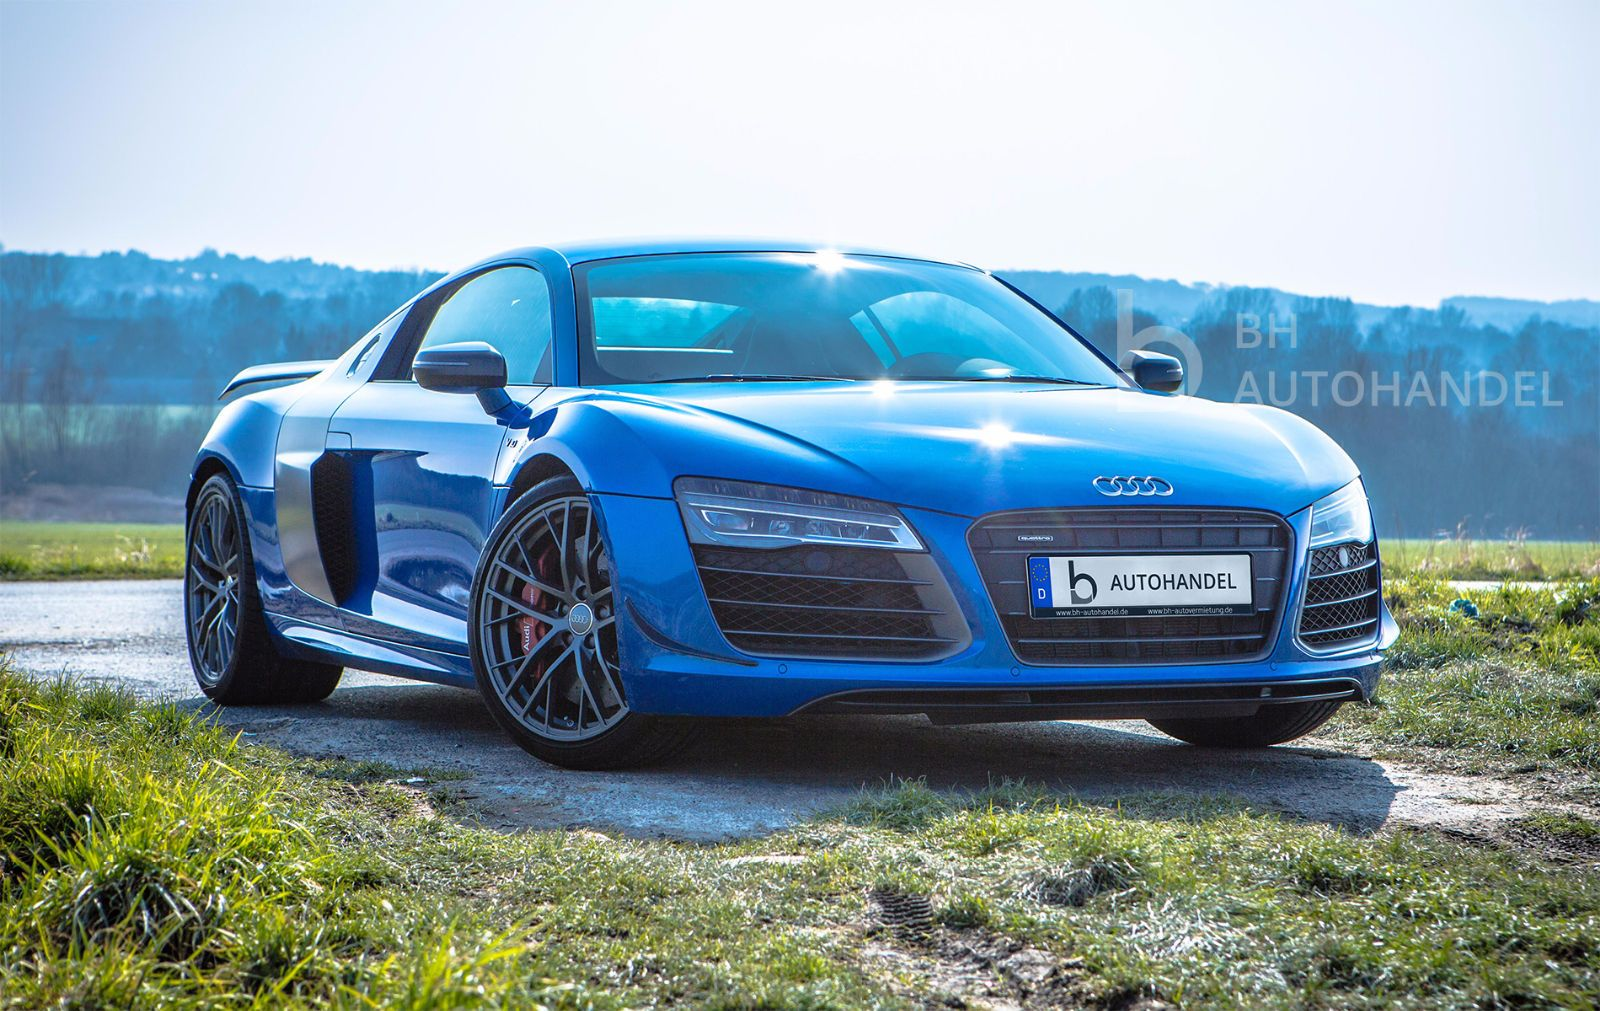 The ultra unique audi exclusive team delivers a rs7 in voodoo blue a porsche exclusive color and its stunning audilife audi a7 s7 rs7 pinterest